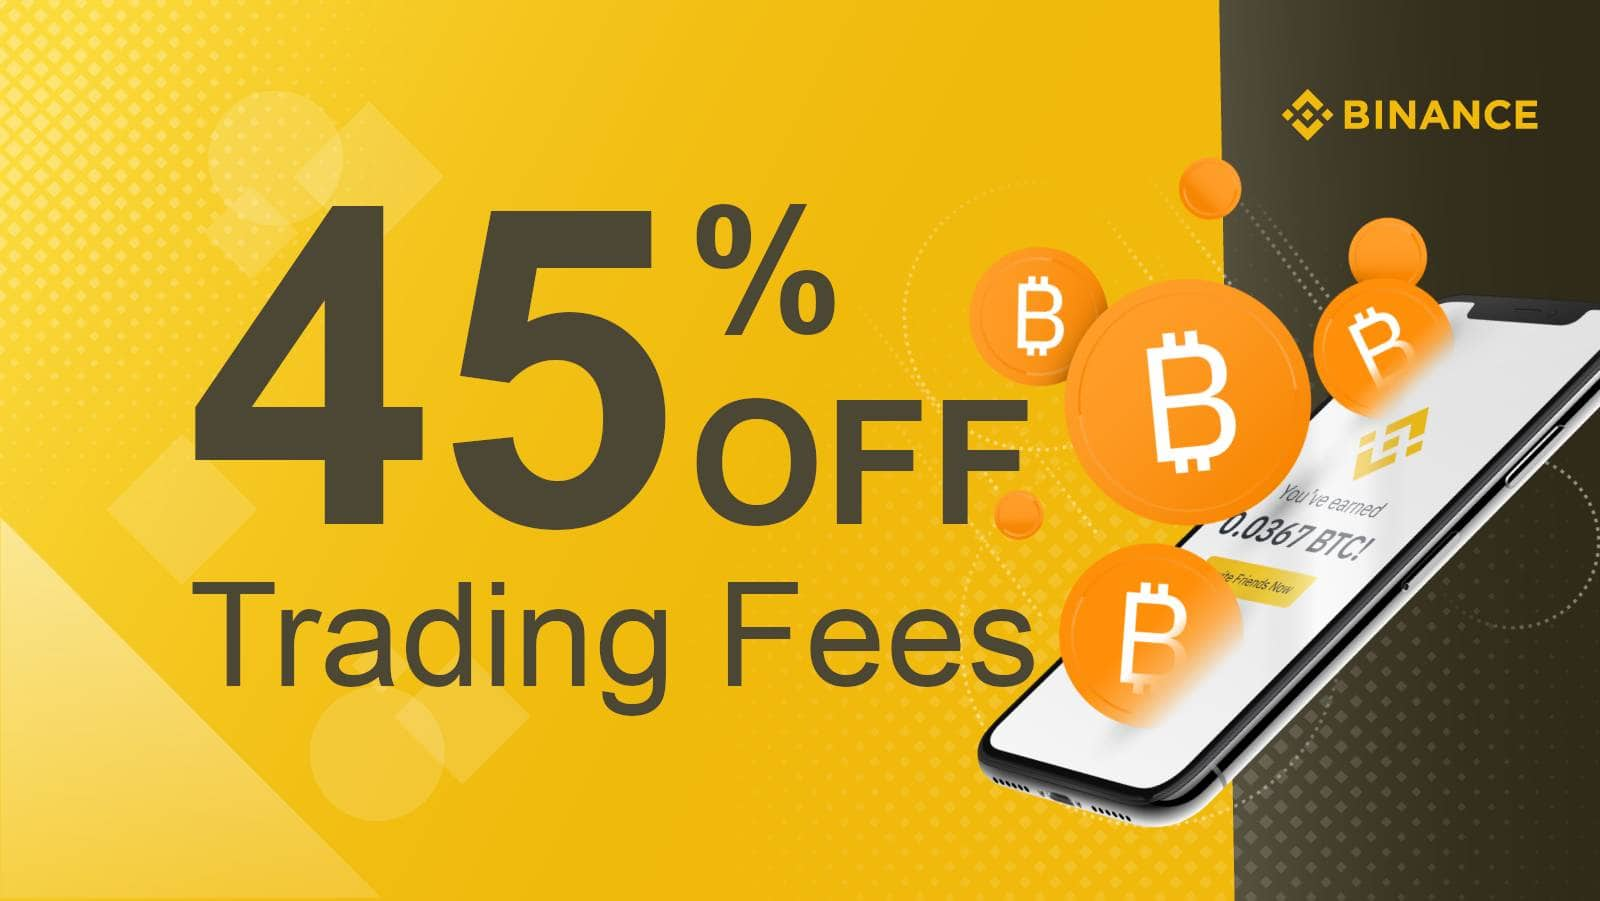 How to Get 45% Discount on Binance. Step-by-step guide to get 20% off using referral code (ZJDRJFAA) and another 25% by paying with BNB.